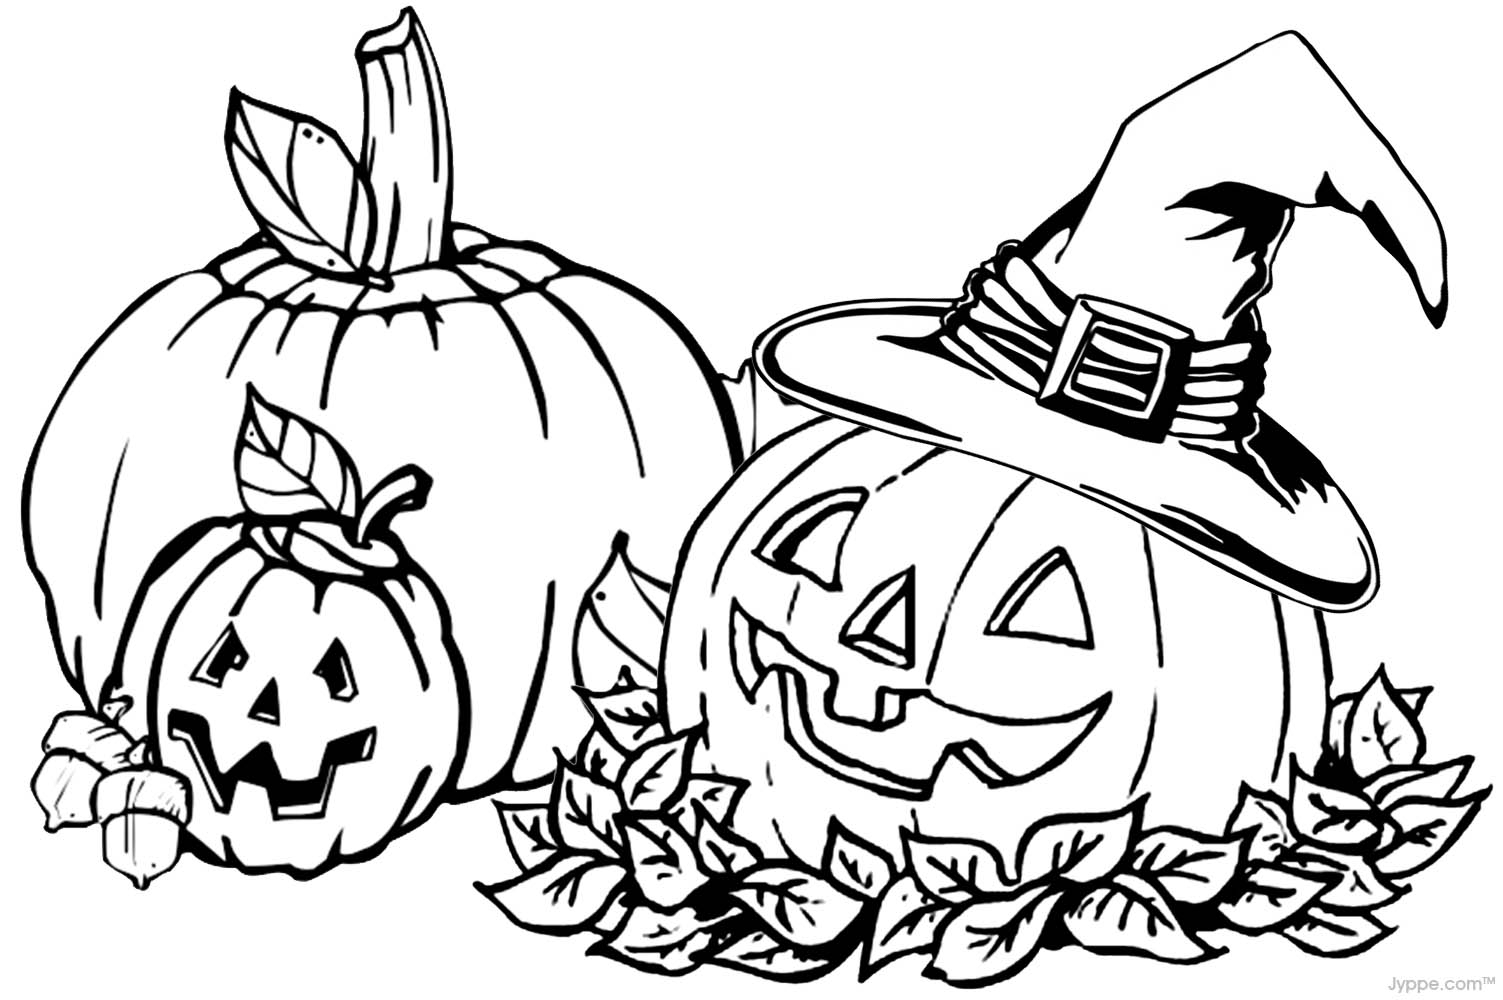 Autumn coloring pages to download